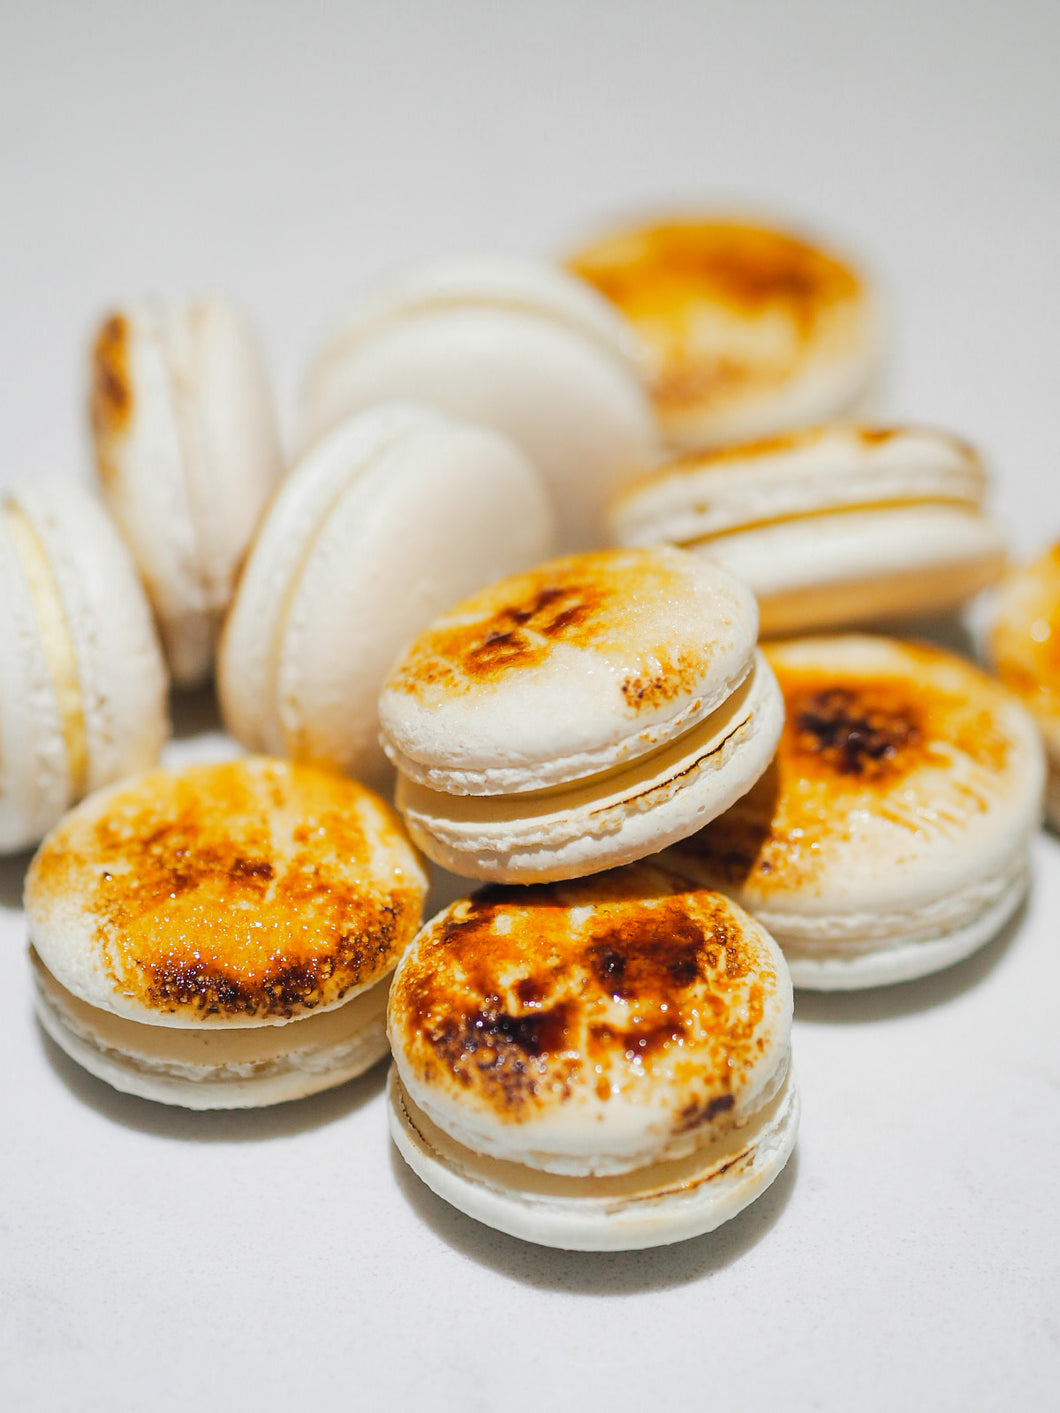 Box of Creme Brulee French Macarons